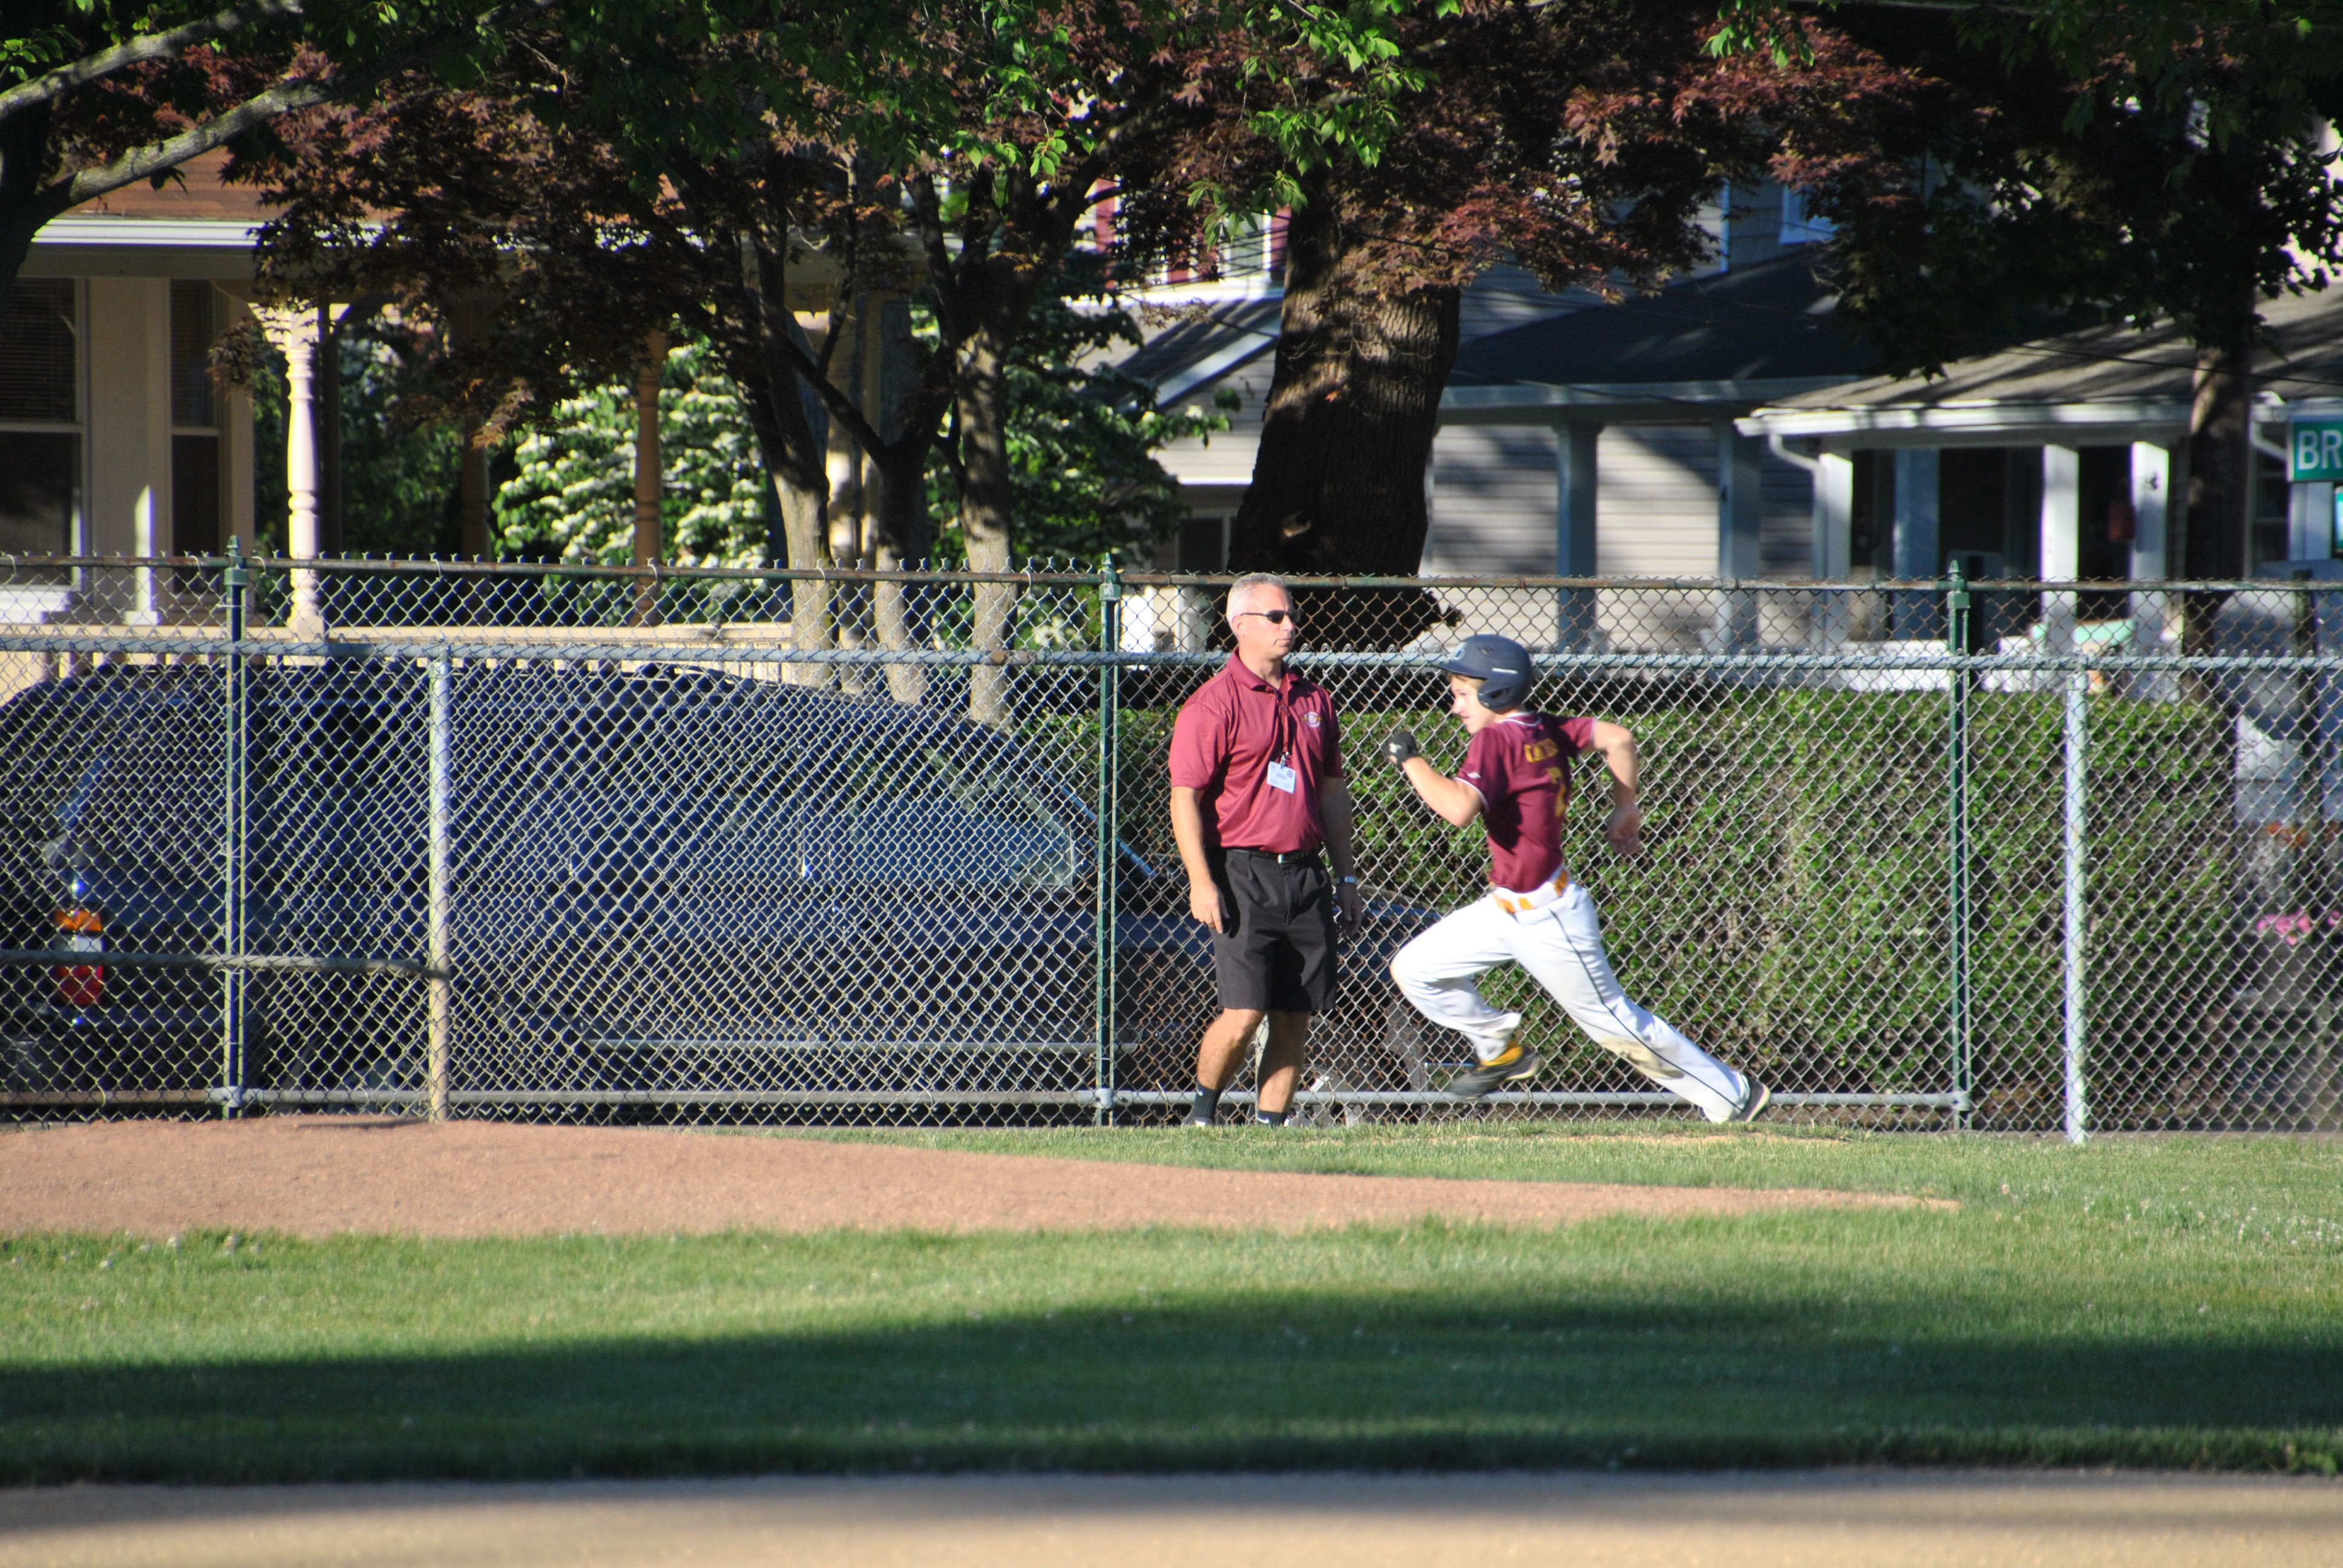 0a5dd7d49db44dc5a456_Ryan_Canfield_storming_home_past_his_3rd_base_coach_and_Dad__Paul_Canfield.JPG